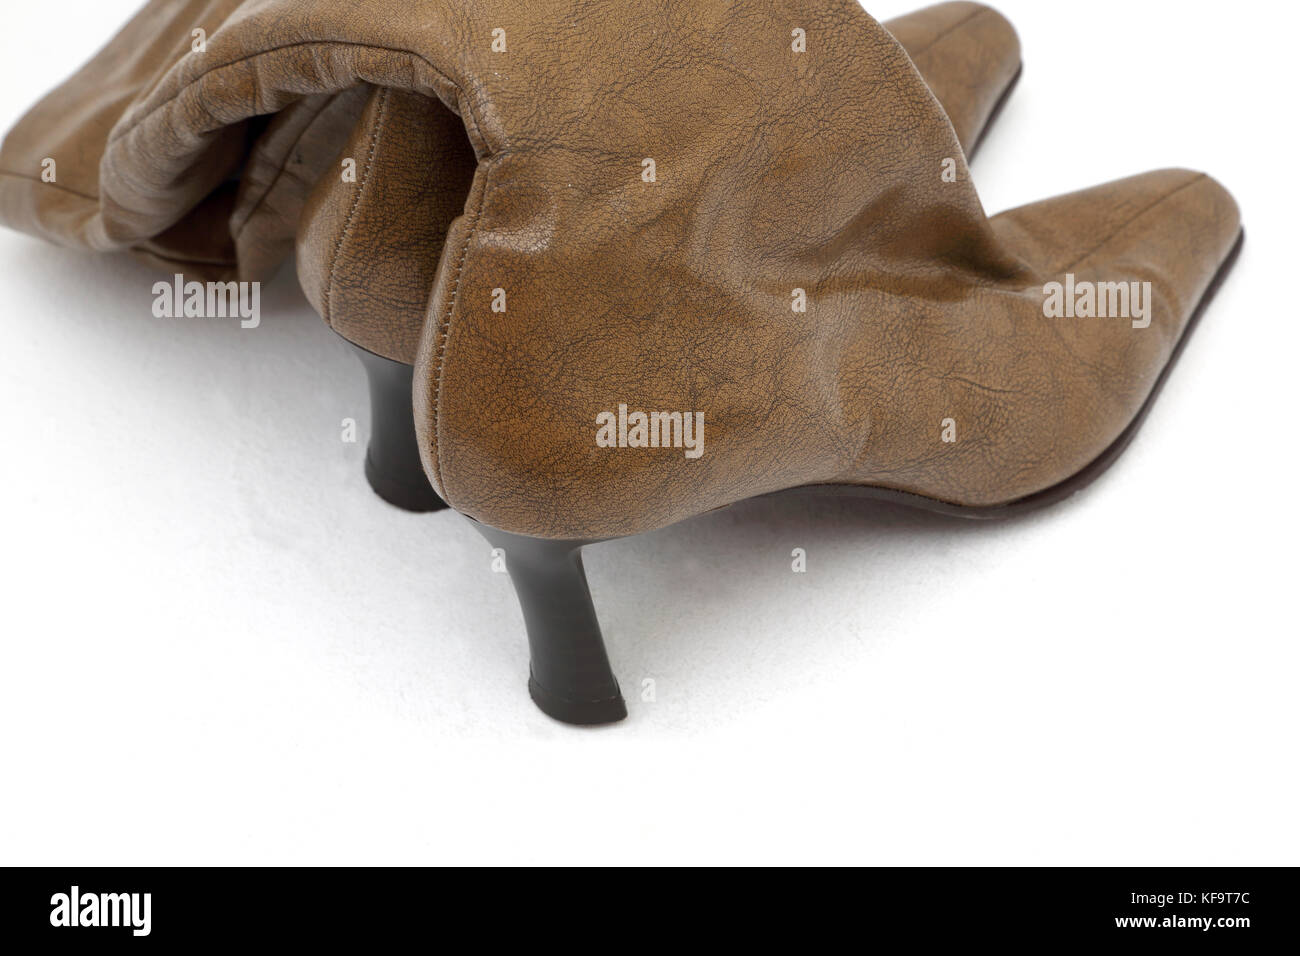 Brown Leather Knee High Boots With High Heels - Stock Image